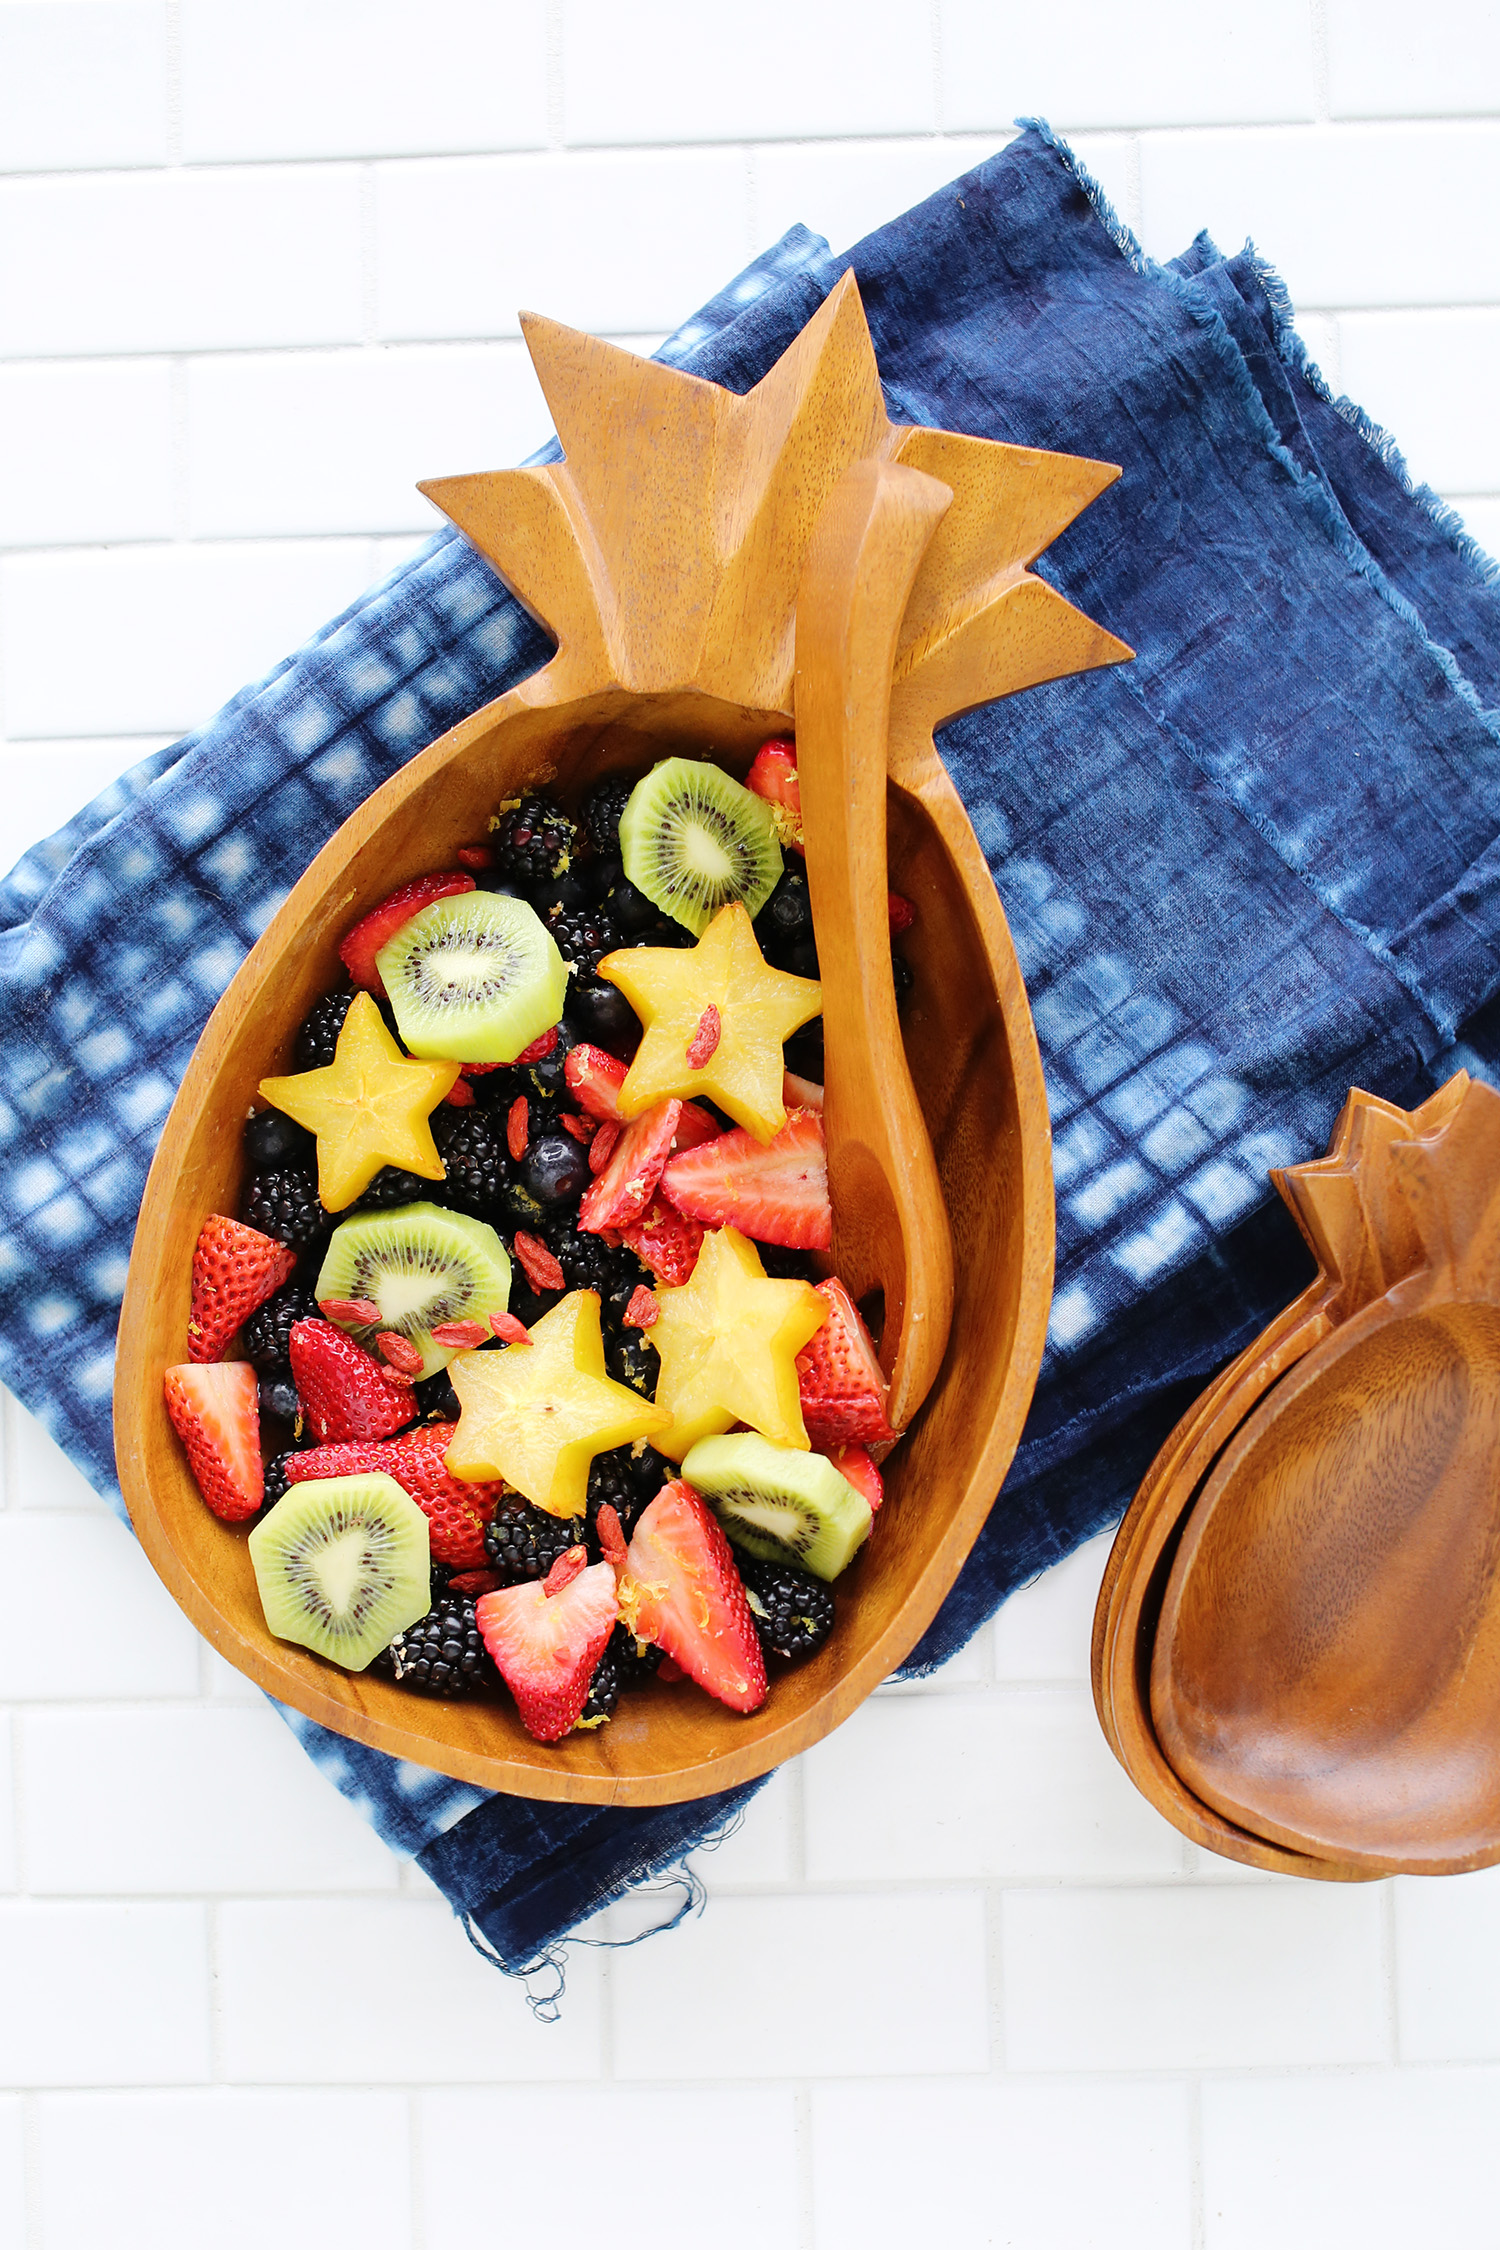 Lemon Ginger Fruit Salad